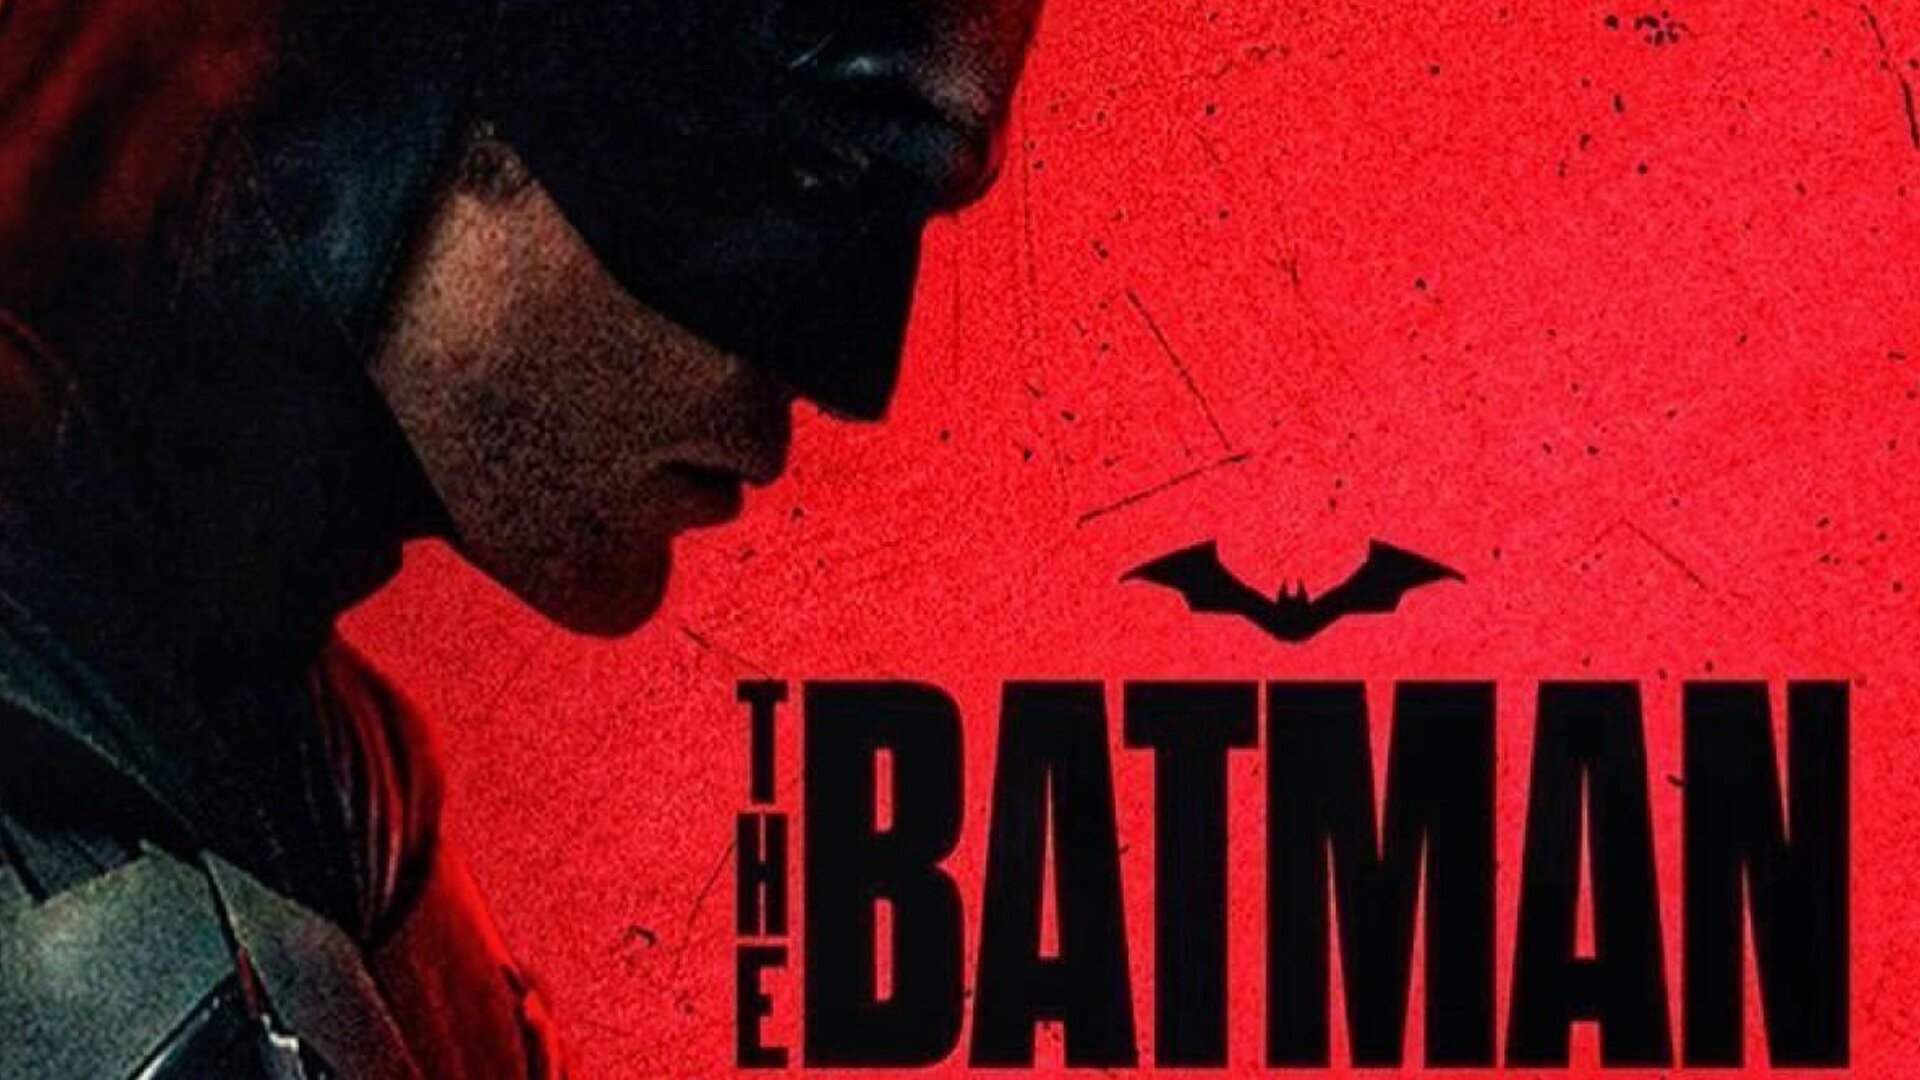 The Batman | Warner Bros. confirma que han retomado sus filmaciones.